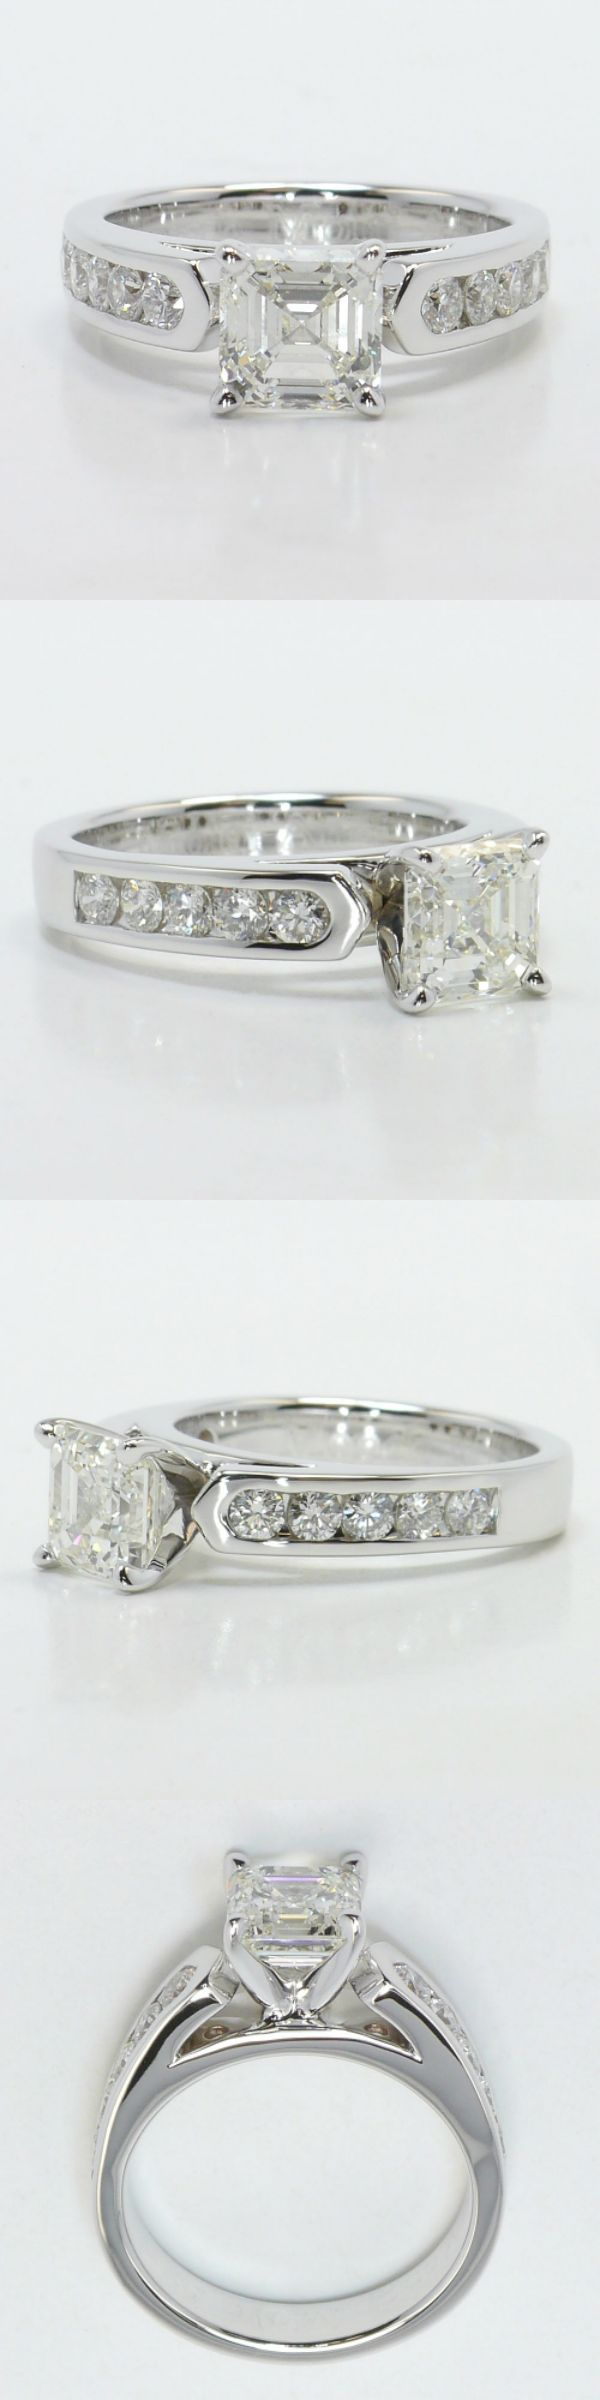 Stunning Cathedral Diamond Engagement Ring! Diamond/Gem Cost: $8,686 (Asscher 1.70 Ctw. Color: H Clarity: VVS2 Cut: Excellent Certification: EGL) Setting Cost: $1,515 (Metal: 18k White Gold Side Shape: Round Side Carat: .48 Side Color: G Side Clarity: SI1 Side Cut: Exellent Setting Type: Channel) Total Cost: $10,201 www.brilliance.com